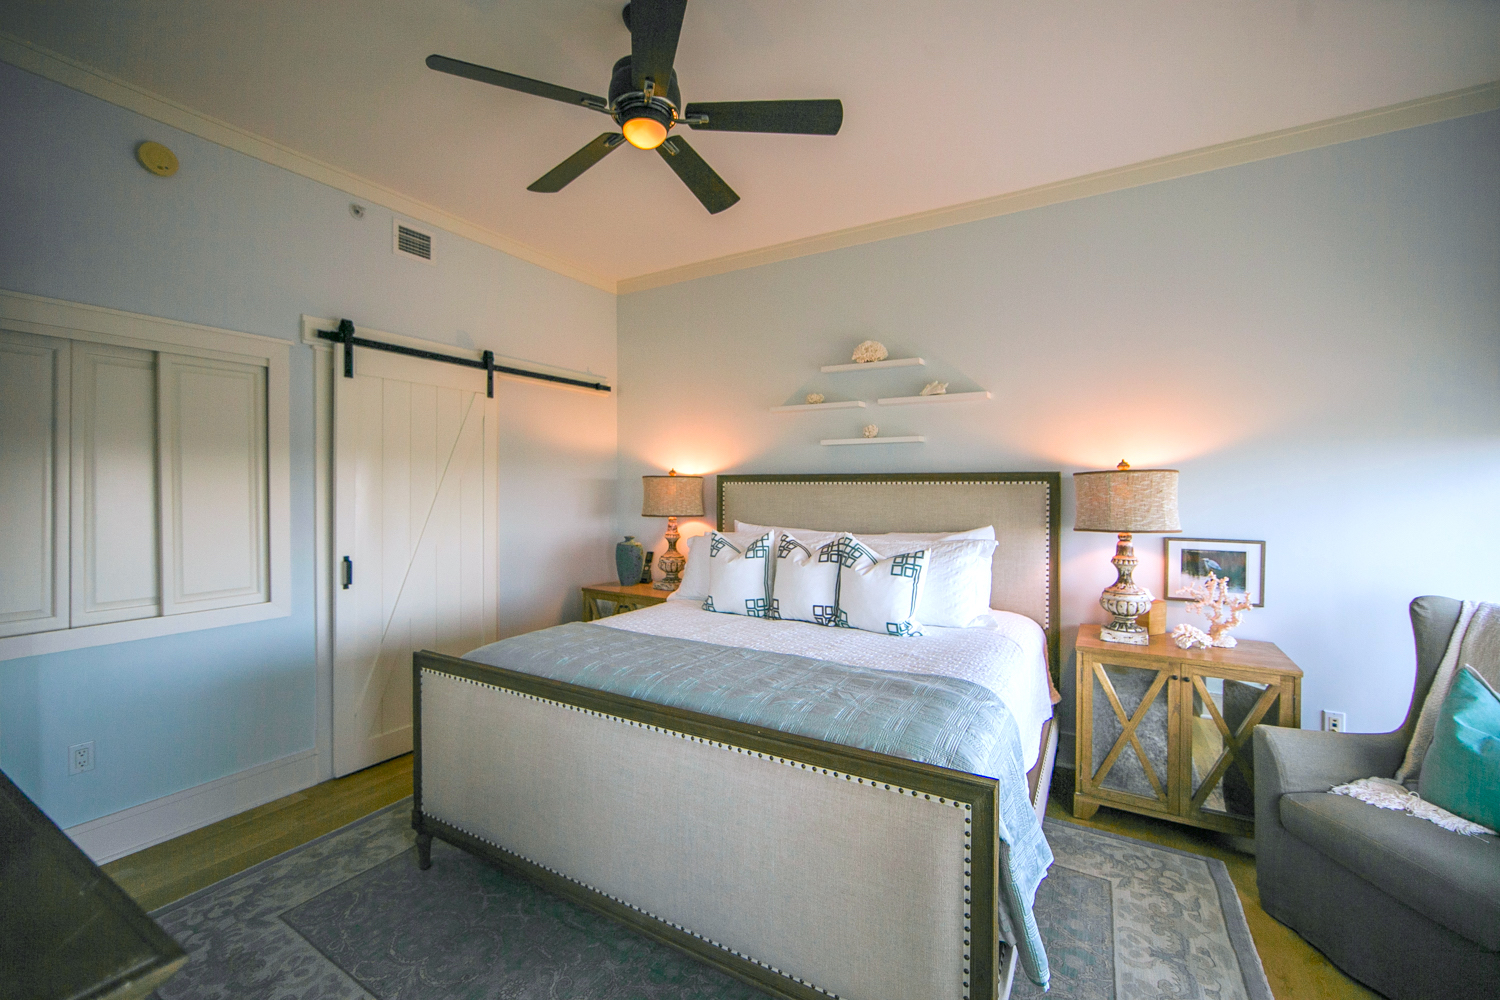 Your master bedroom is a wonderfully serene retreat